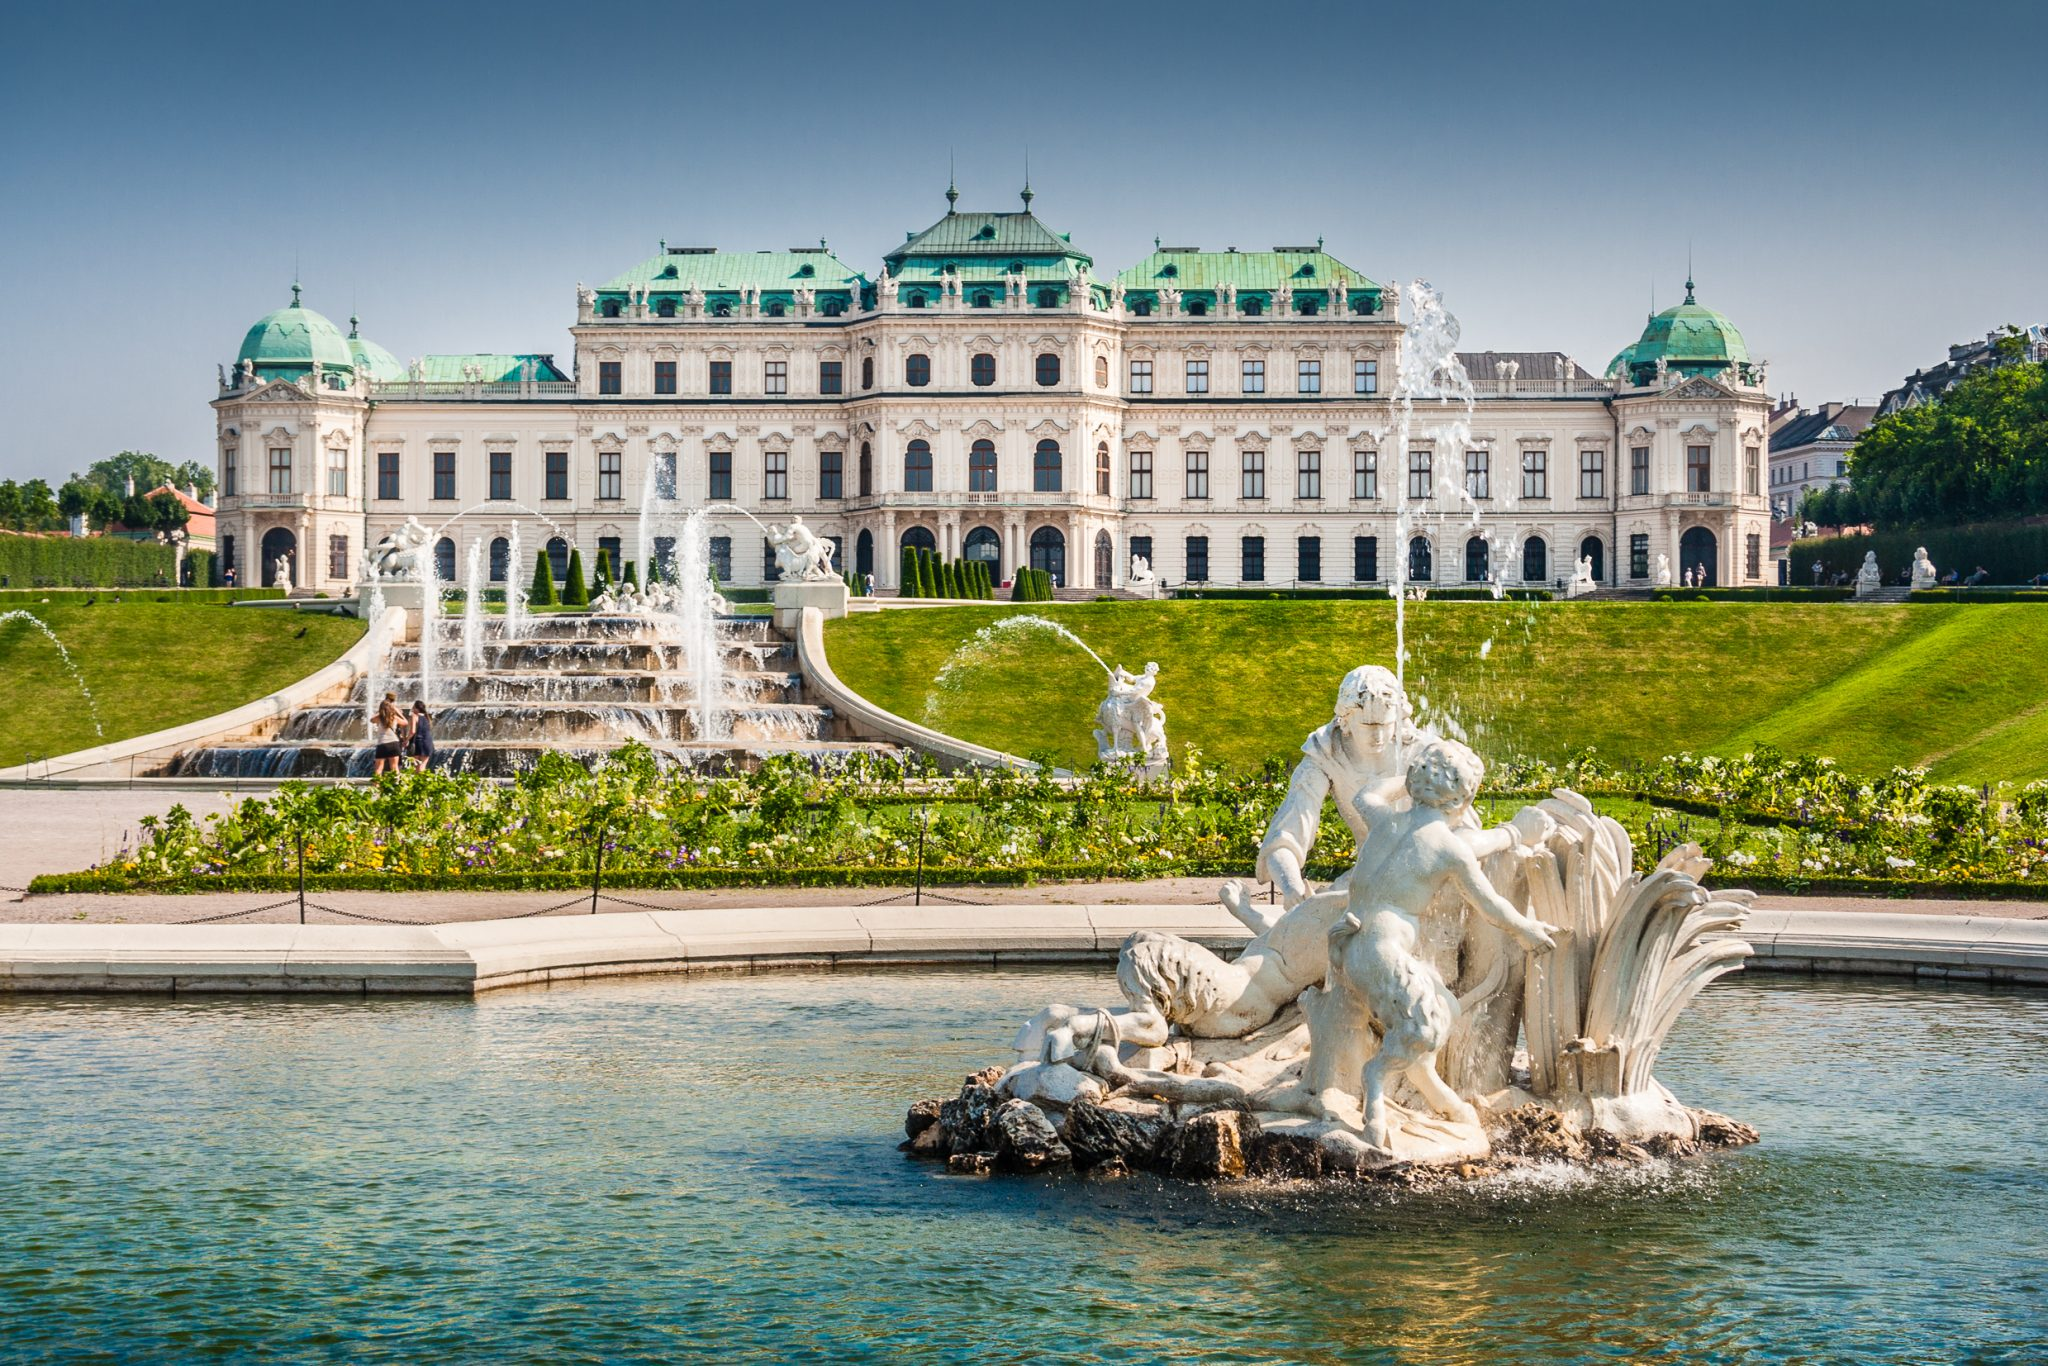 front facade belvedere palace in vienna--when choosing between budapest or vienna, consider vienna's palaces